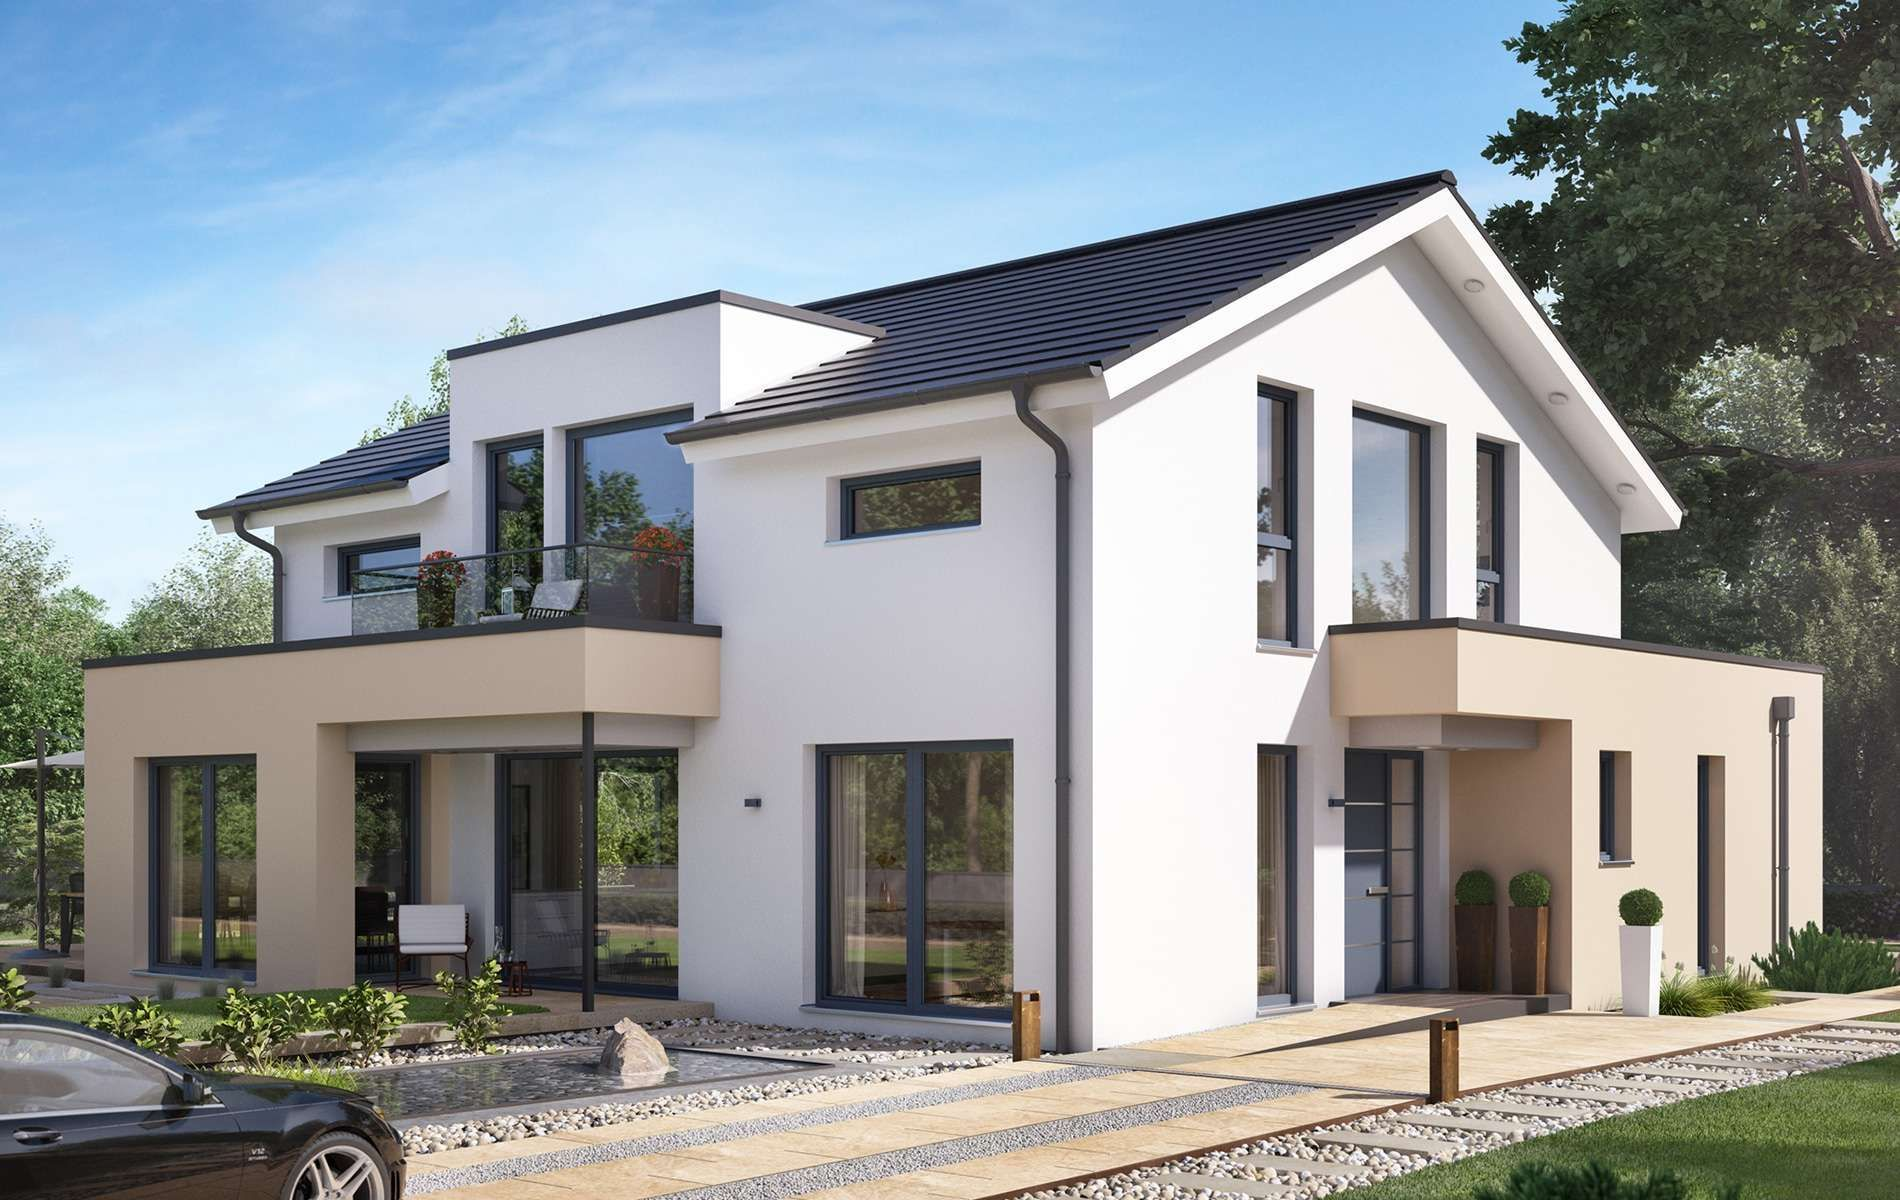 Housedesign Bien Zenker Concept M 155 Leipzig In 2020 House With Balcony House Styles House